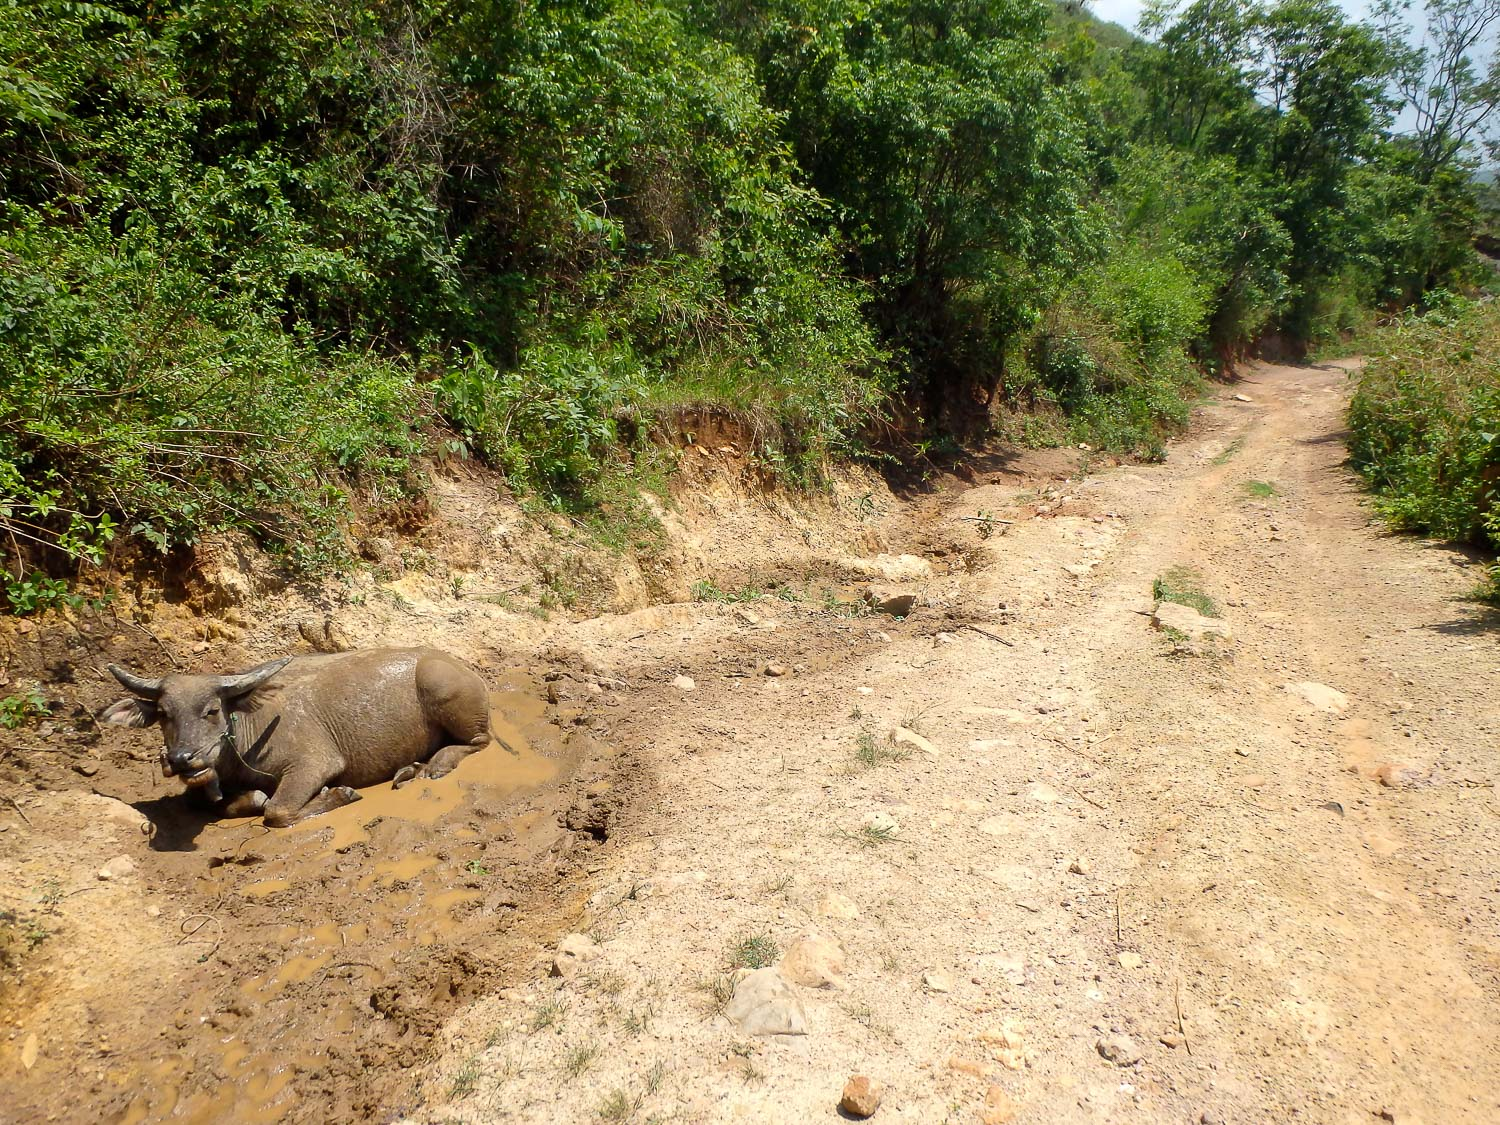 Water buffalo wallowing on the road